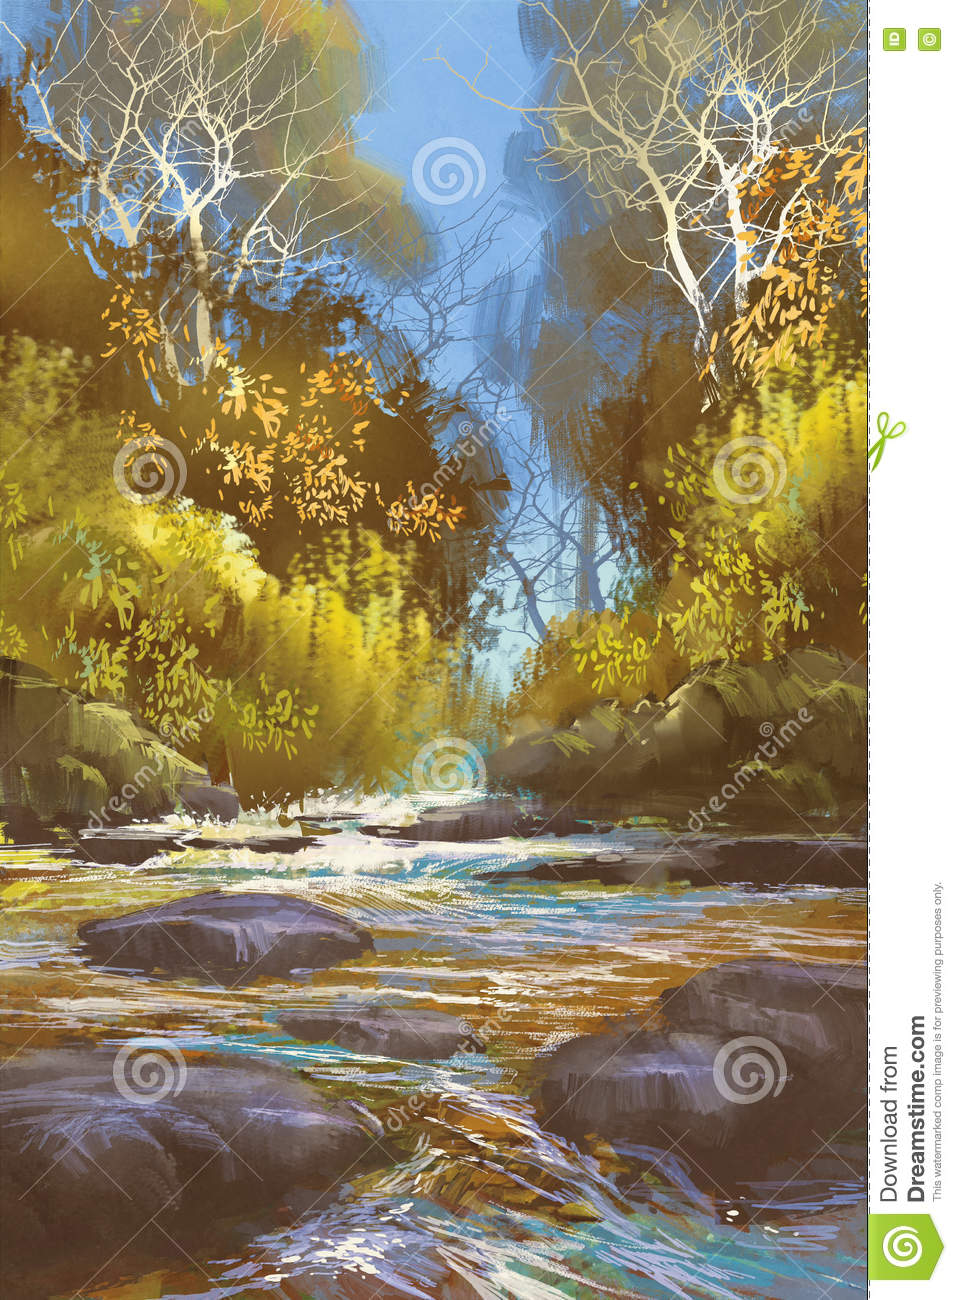 Landscape painting of creek in forest